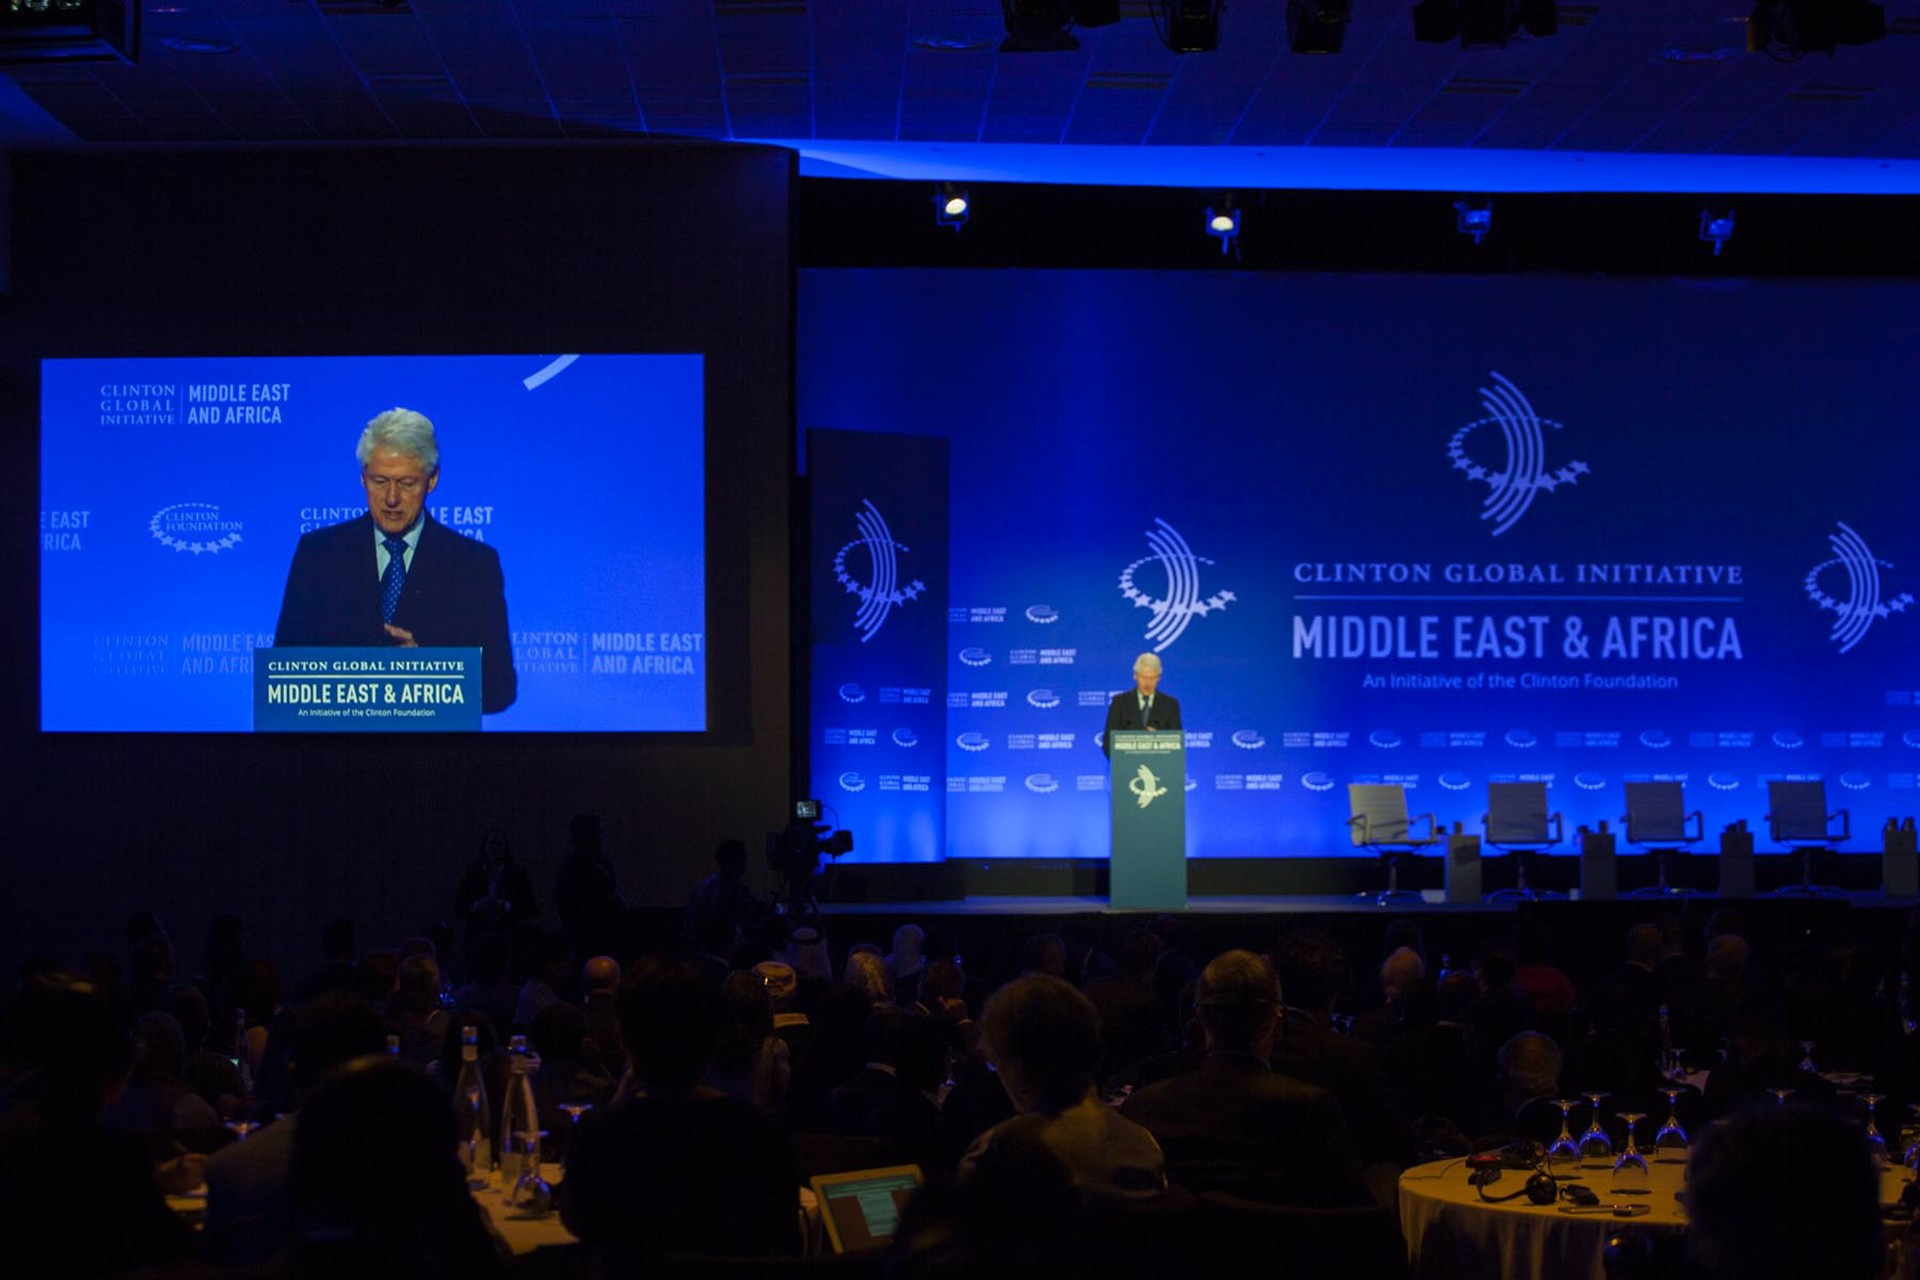 CLINTON GLOBAL INITIATIVE (CGI) MIDDLE EAST & AFRICA